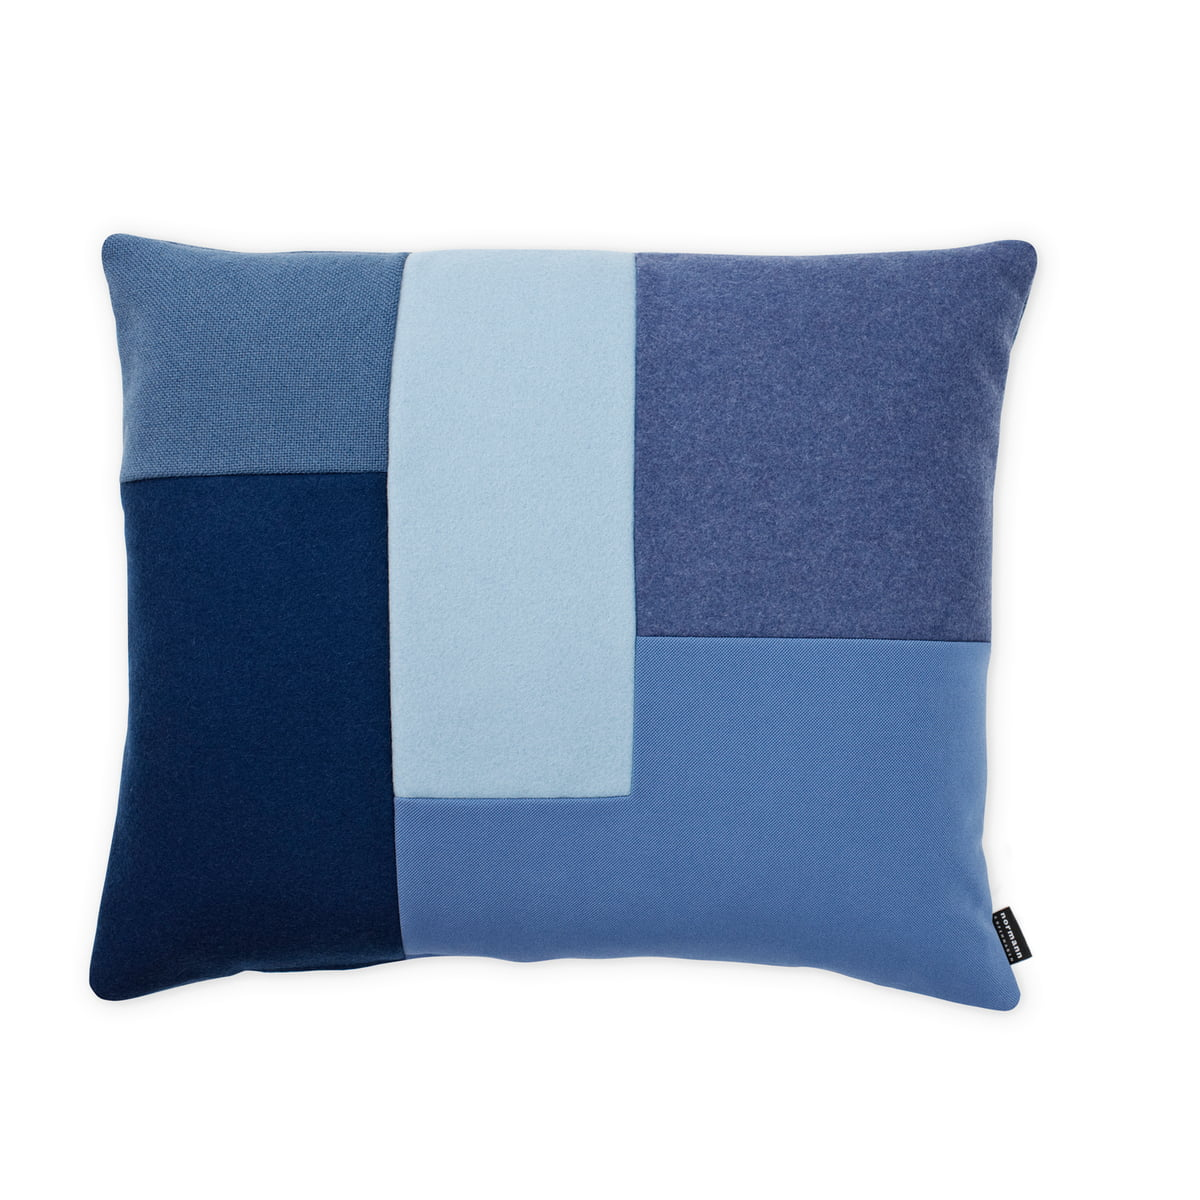 coussin normann copenhagen Brick Cushion by Normann Copenhagen coussin normann copenhagen